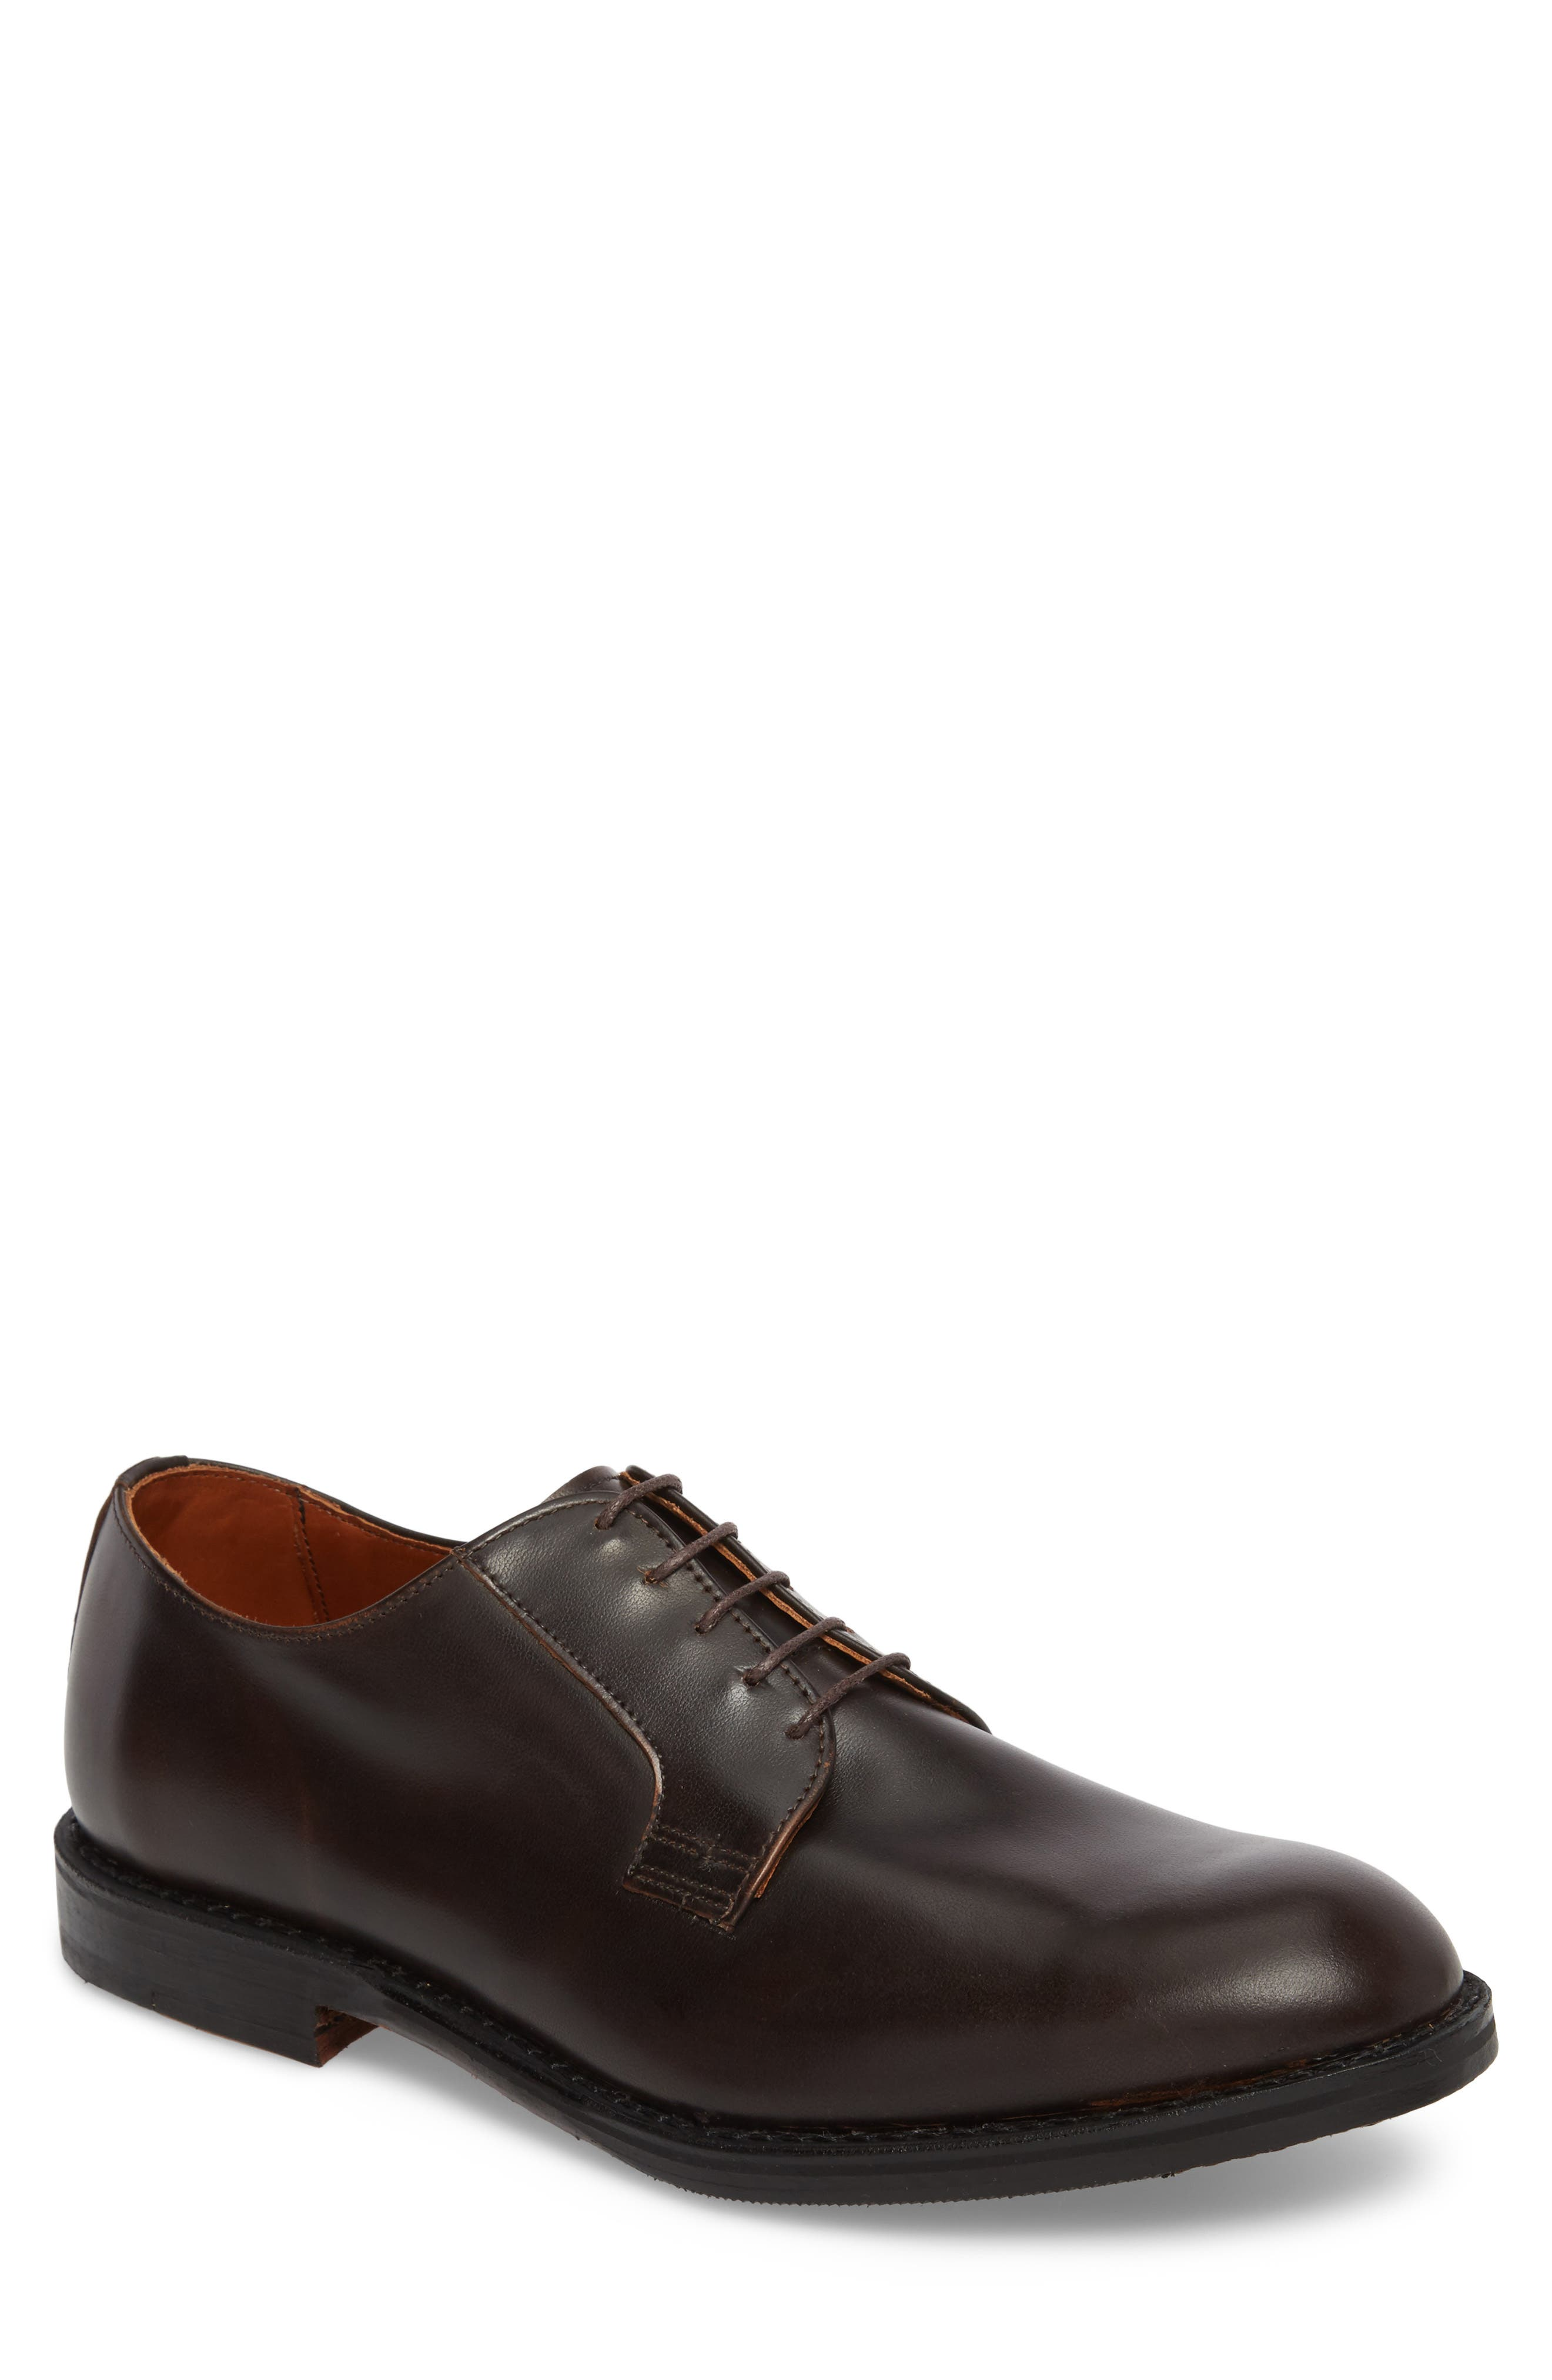 Whitney Plain Toe Derby,                             Main thumbnail 1, color,                             Brown Leather